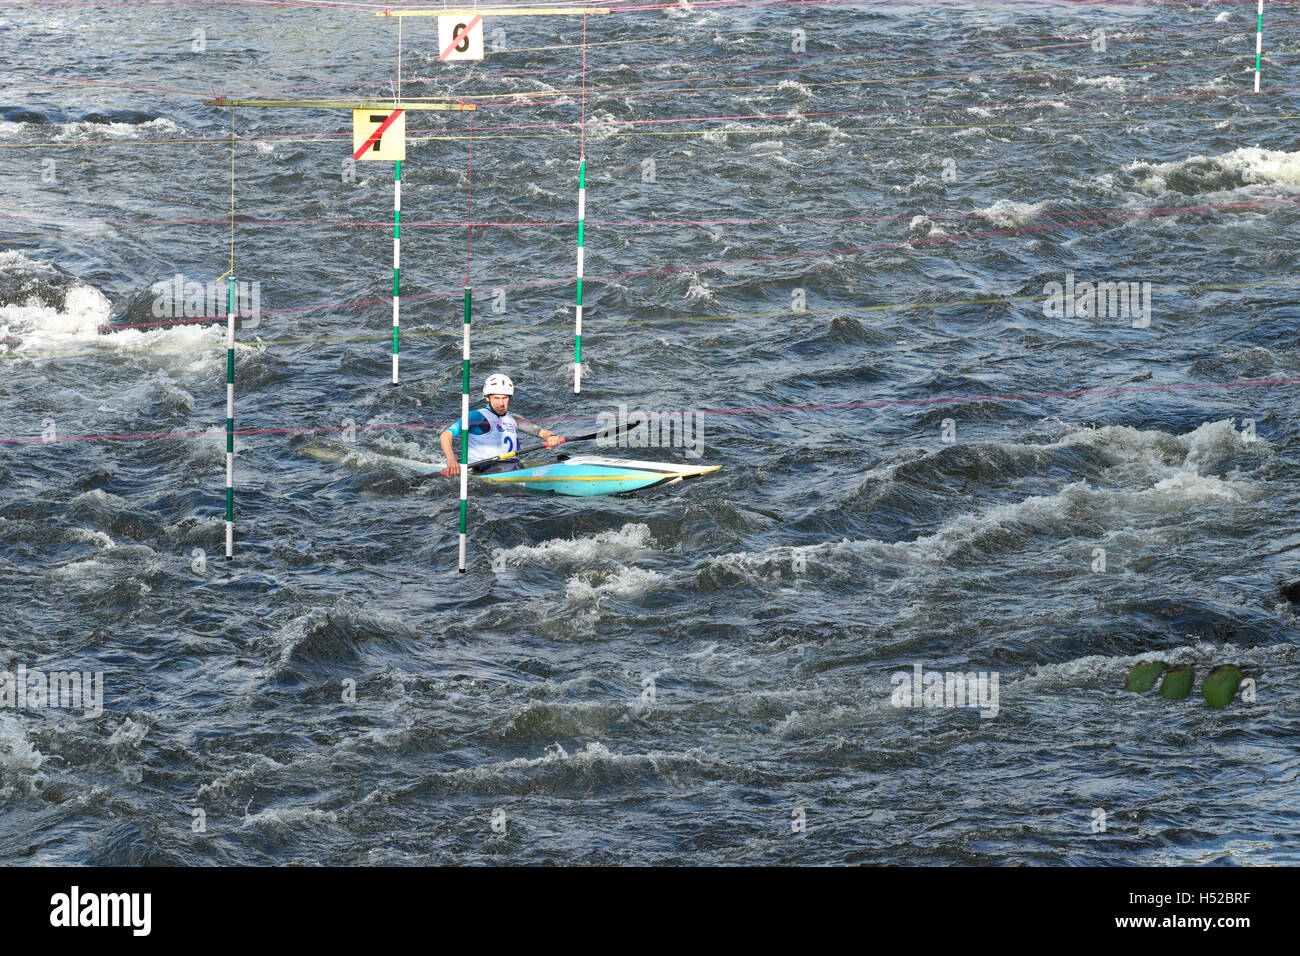 British Canoeing Slalom Competition Event On The River Wye At Symonds Yat In Herefordshire October 2016